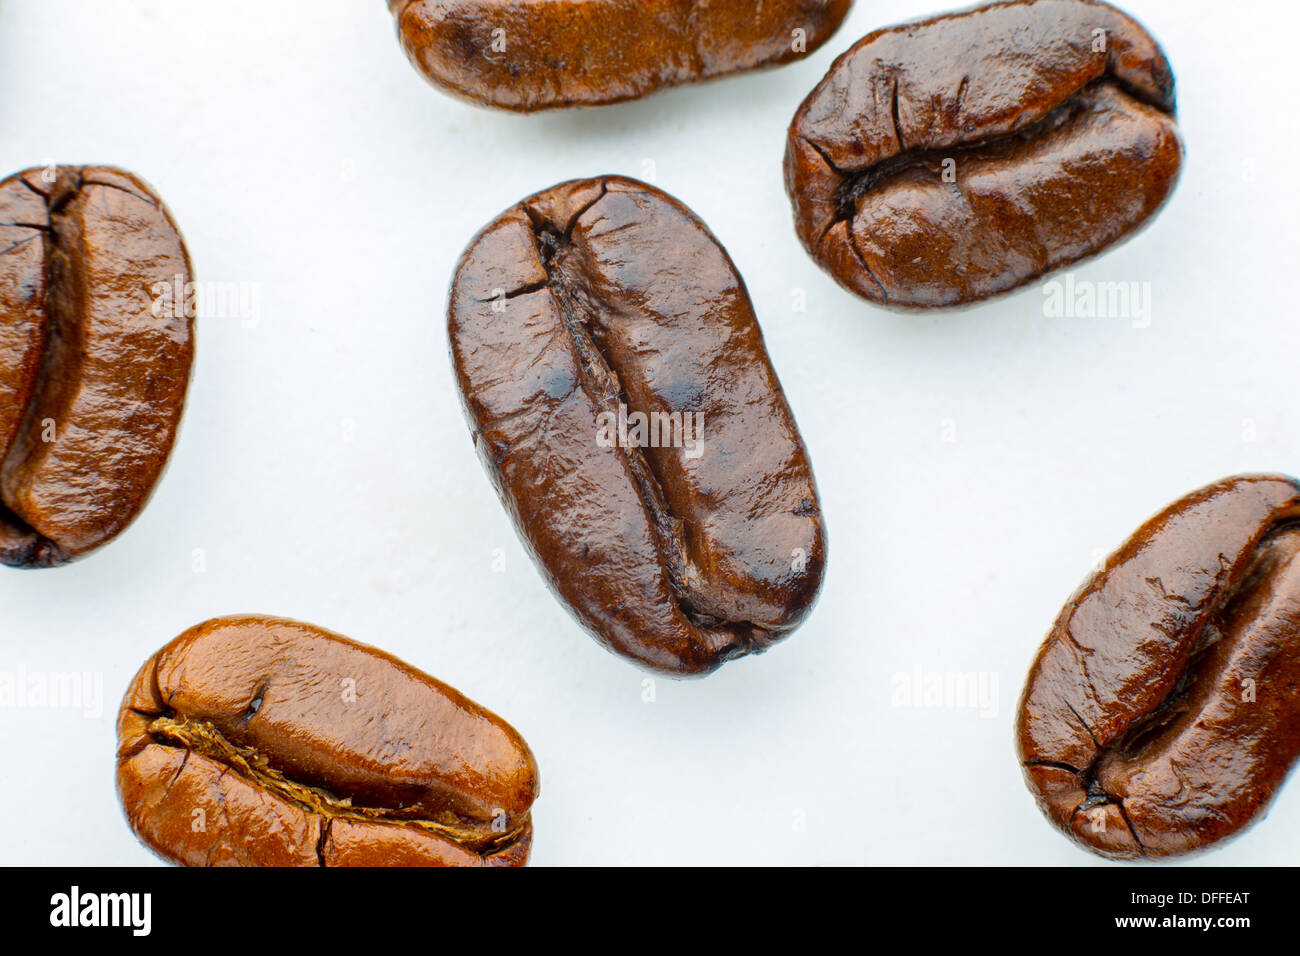 roasted coffee beans arabica in white background - Stock Image